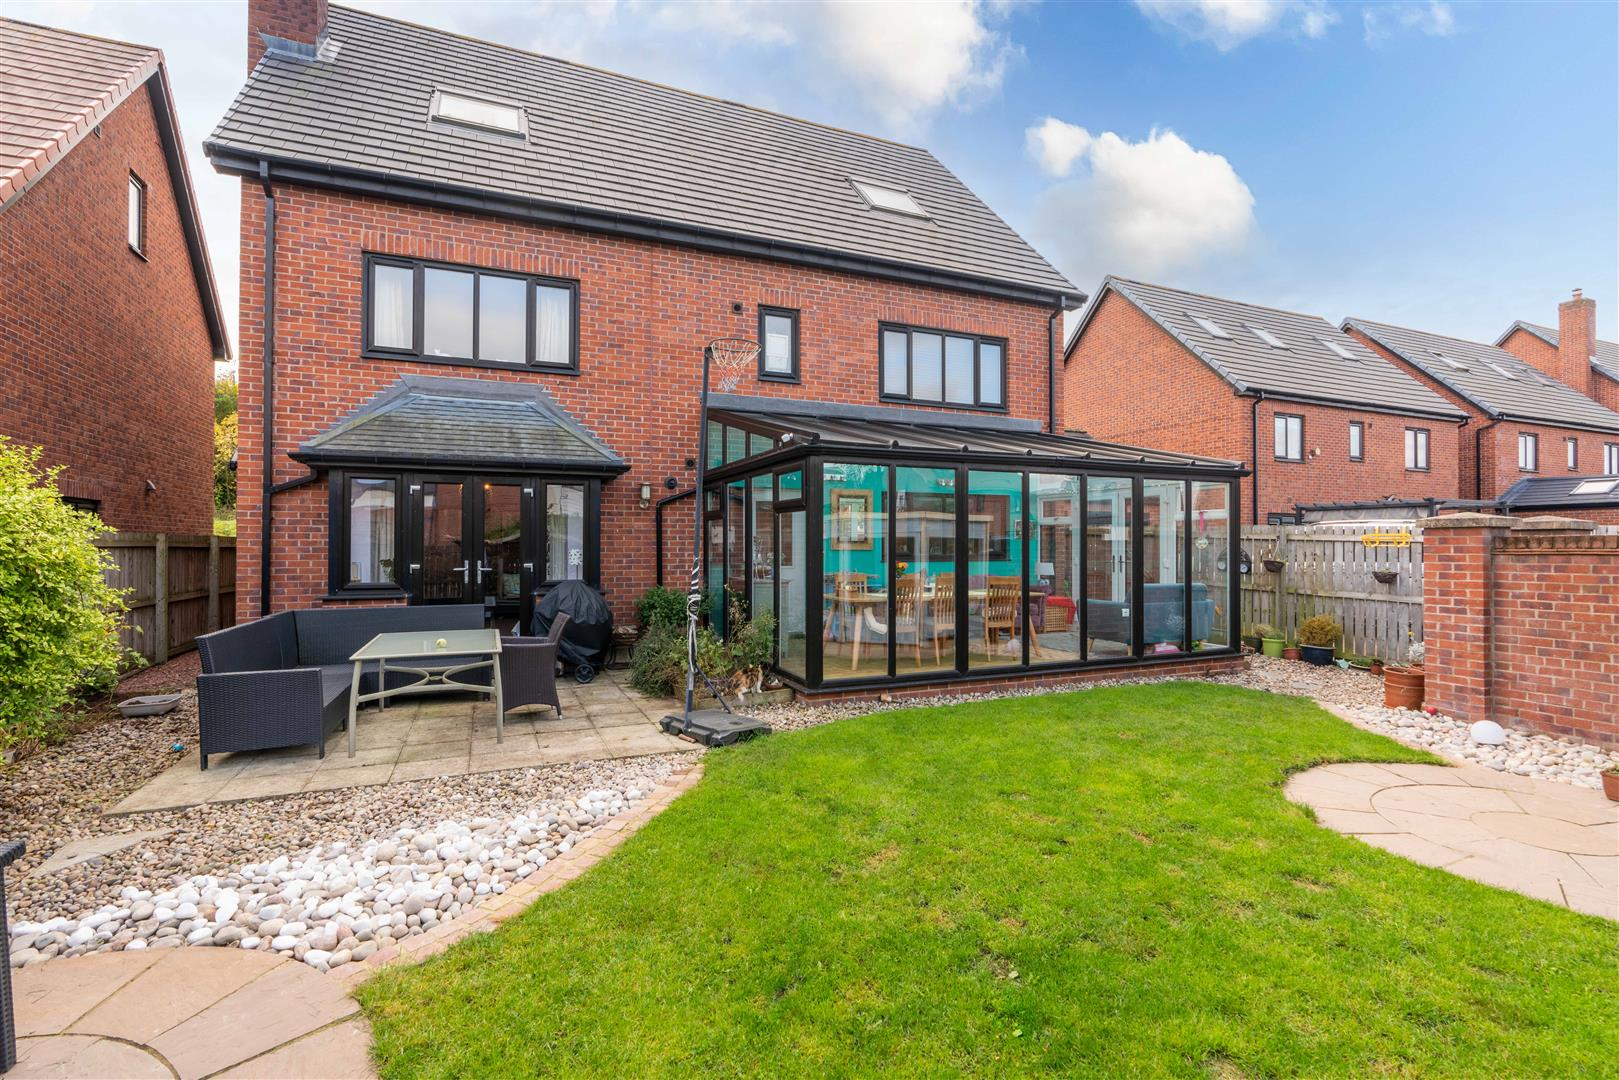 6 bed detached house for sale in Abberwick Walk, Newcastle Upon Tyne 3